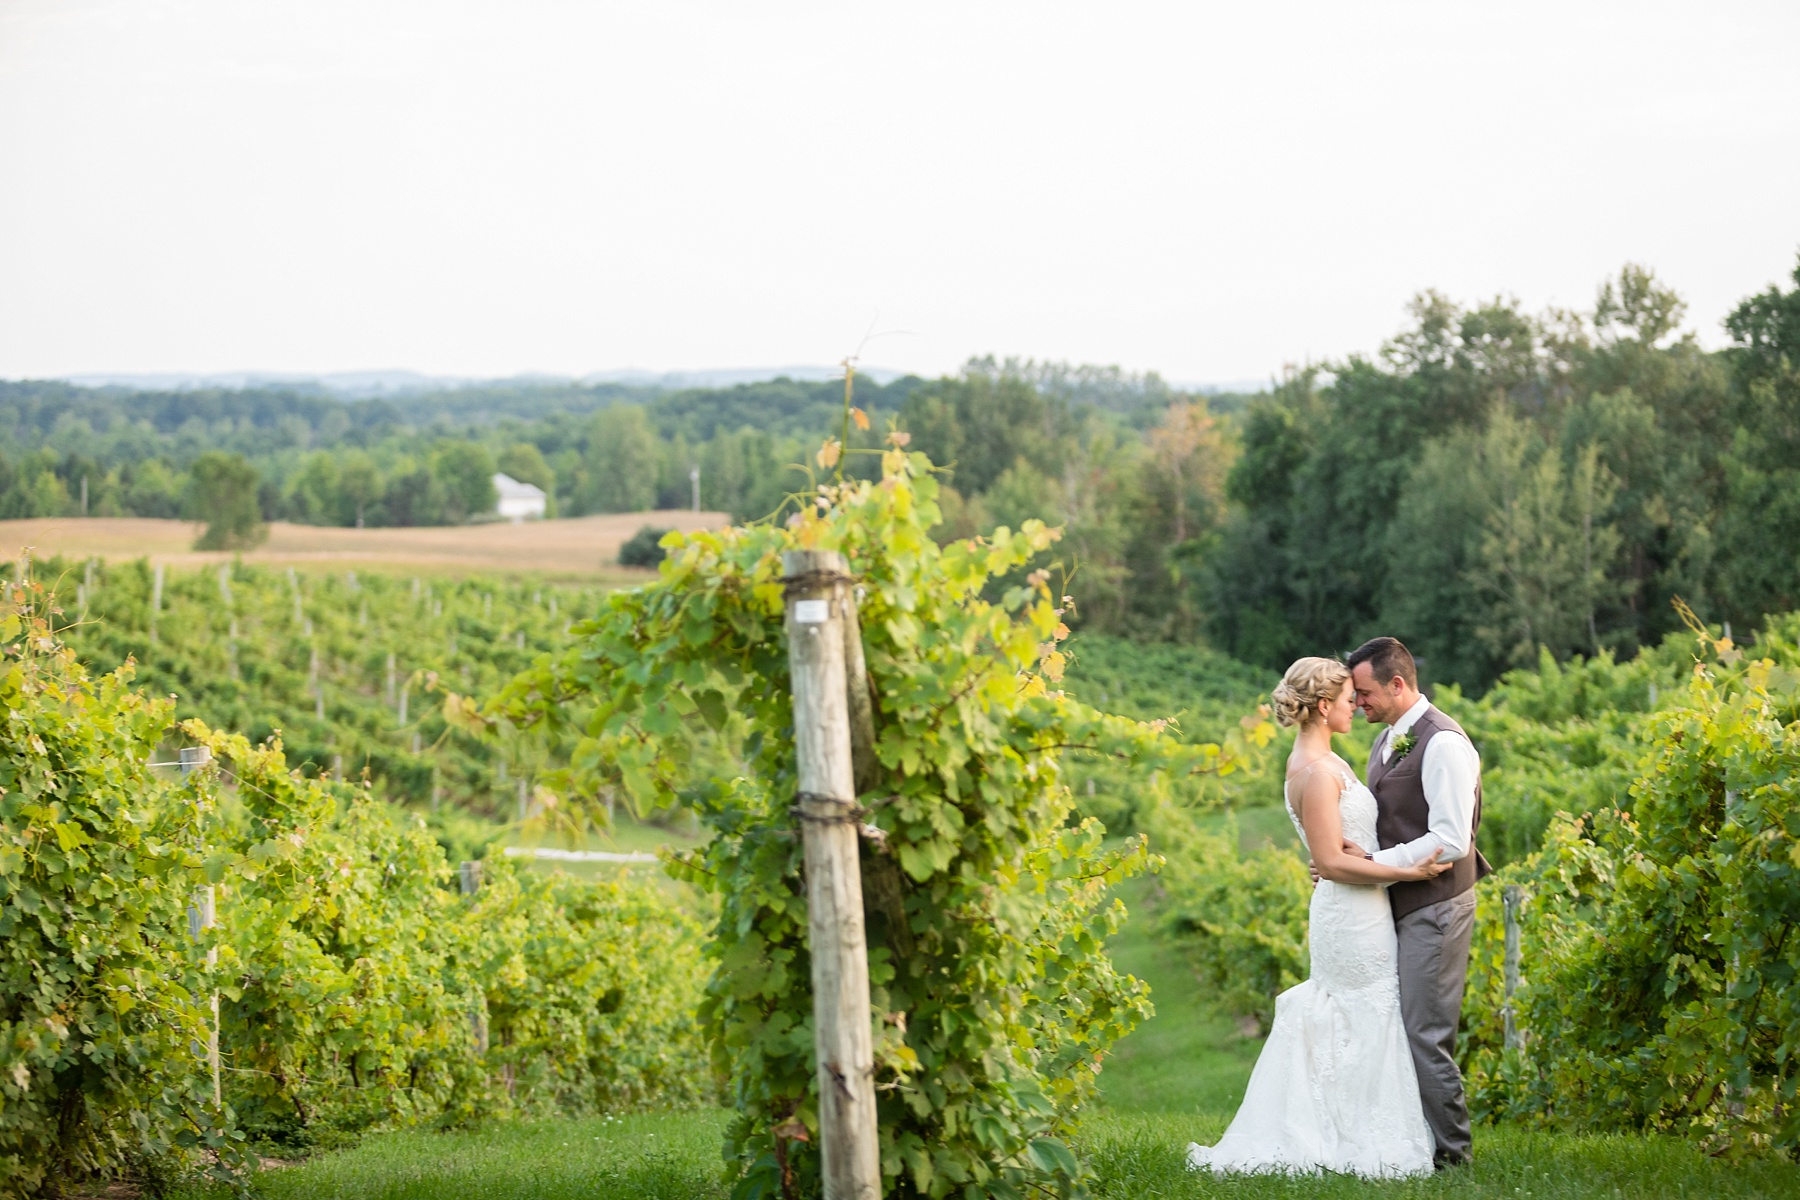 Brandon_Shafer_Photography_Lauren_Vasile_Ciccone_Vineyard_Suttons_Bay_Wedding_0063.jpg